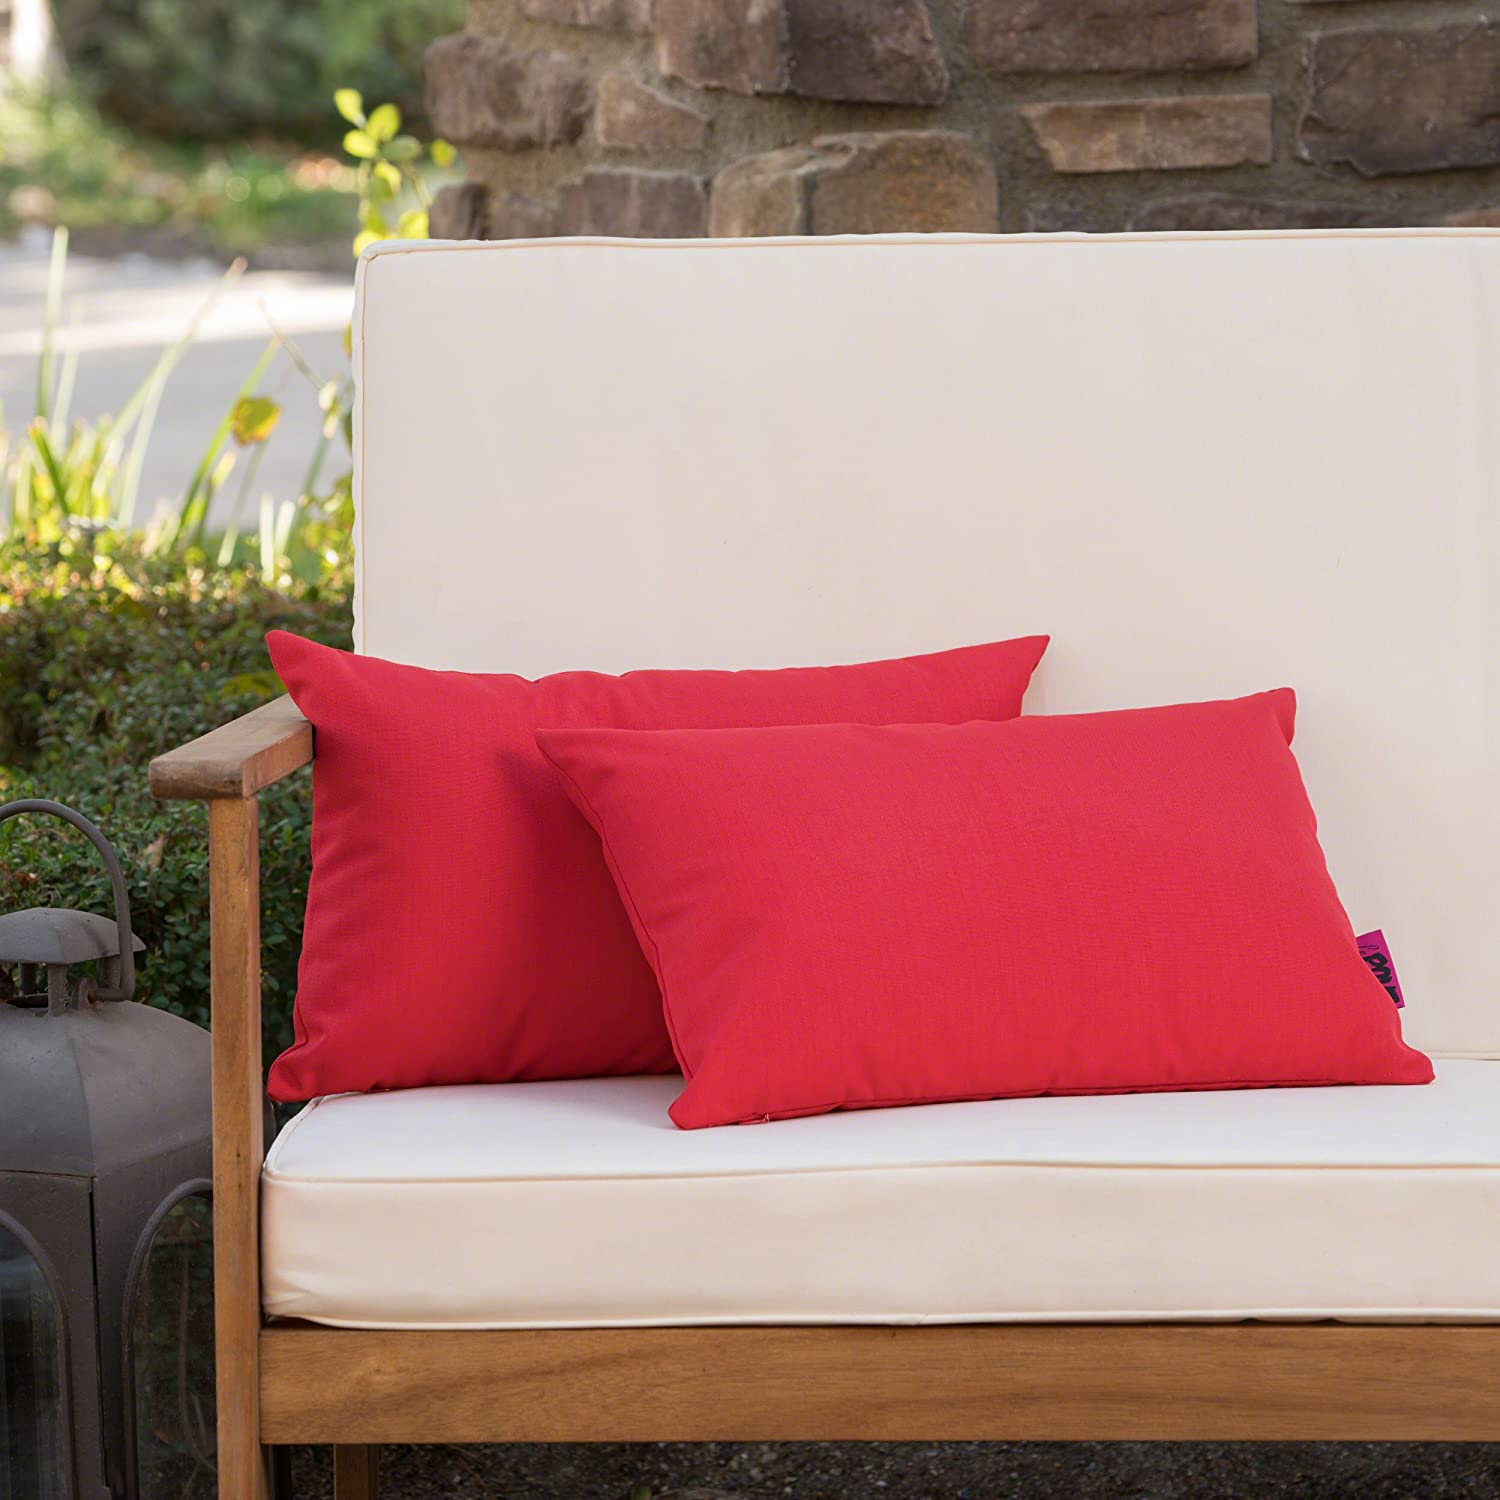 Christopher Knight Home Coronado Outdoor Red Water Resistant Rectangular Throw Pillow Set of 2